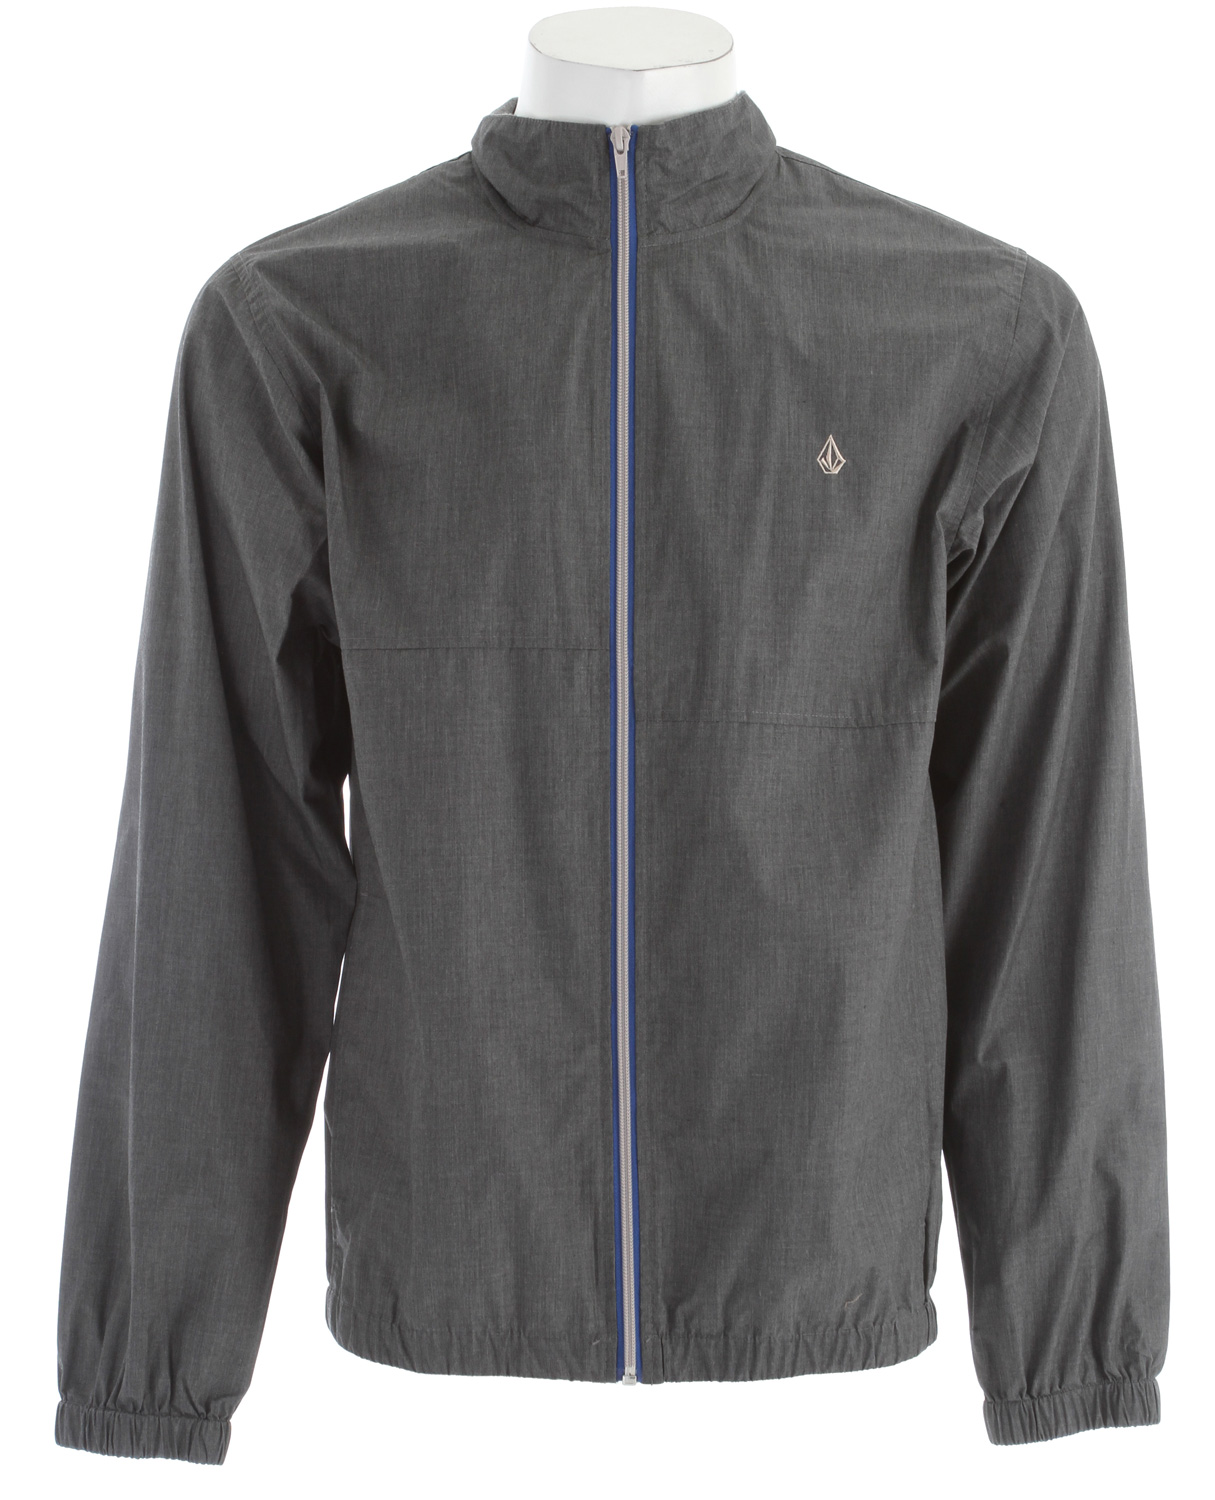 Surf Key Features of the Volcom Fadeaway Jacket: Mock neck windbreaker 2 color front zipper Elastic cuff and waistband Rib interior collar Full body mesh lining 65% polyester/35% cotton w/ 600mm - $37.95